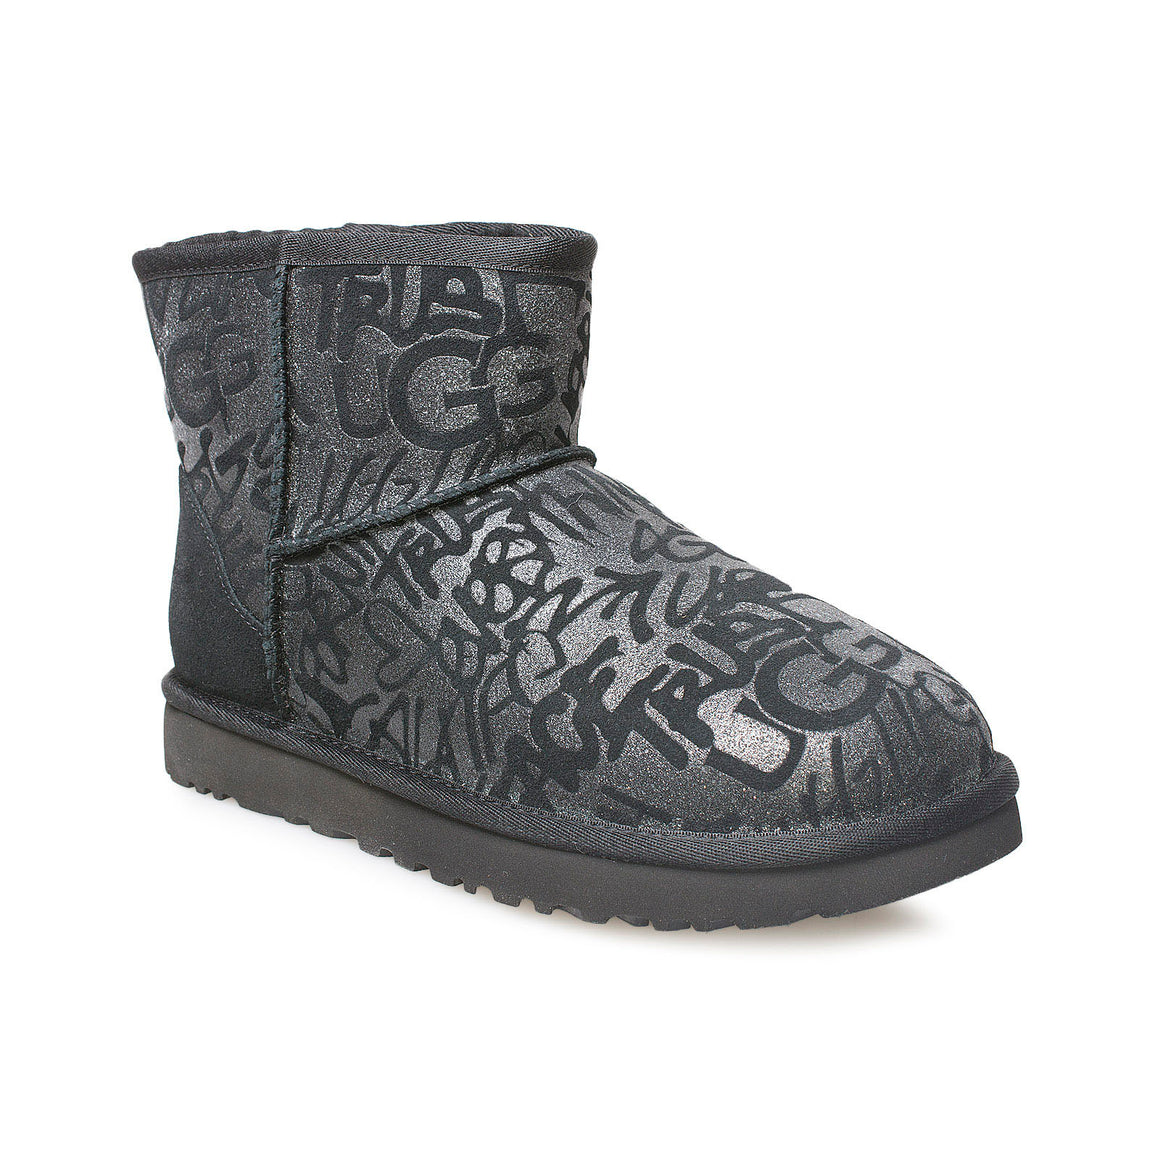 UGG Classic Mini Sparkle Graffiti Black Boots - Women's